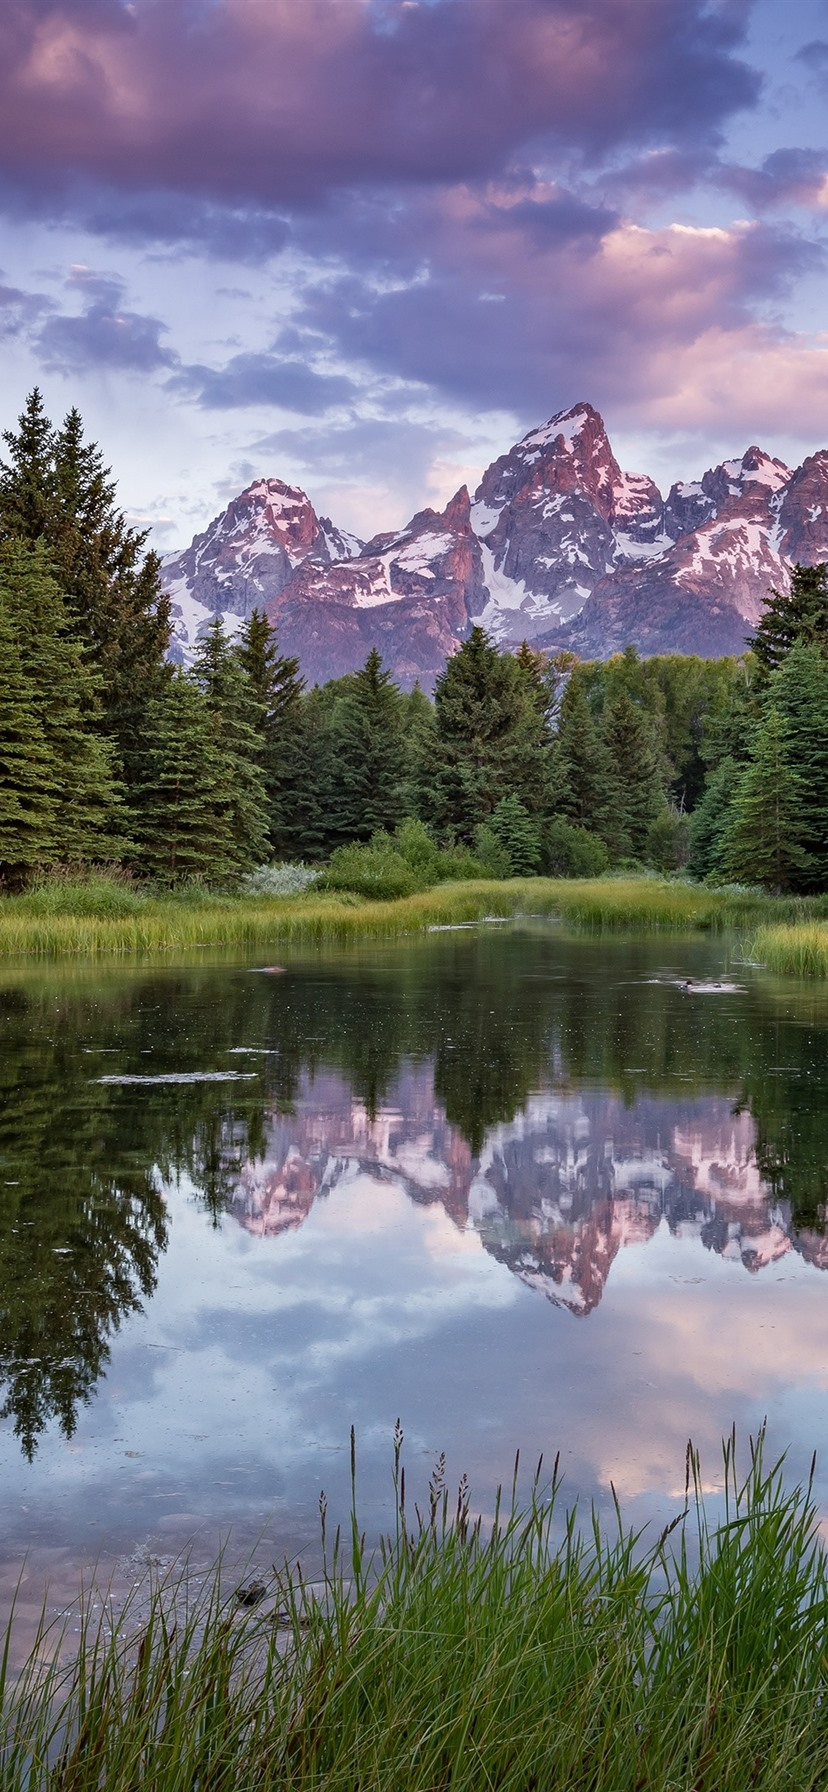 Summer Trees Lake Mountains Nature Landscape 1080x1920 Iphone 8 7 6 6s Plus Wallpaper Background Picture Image